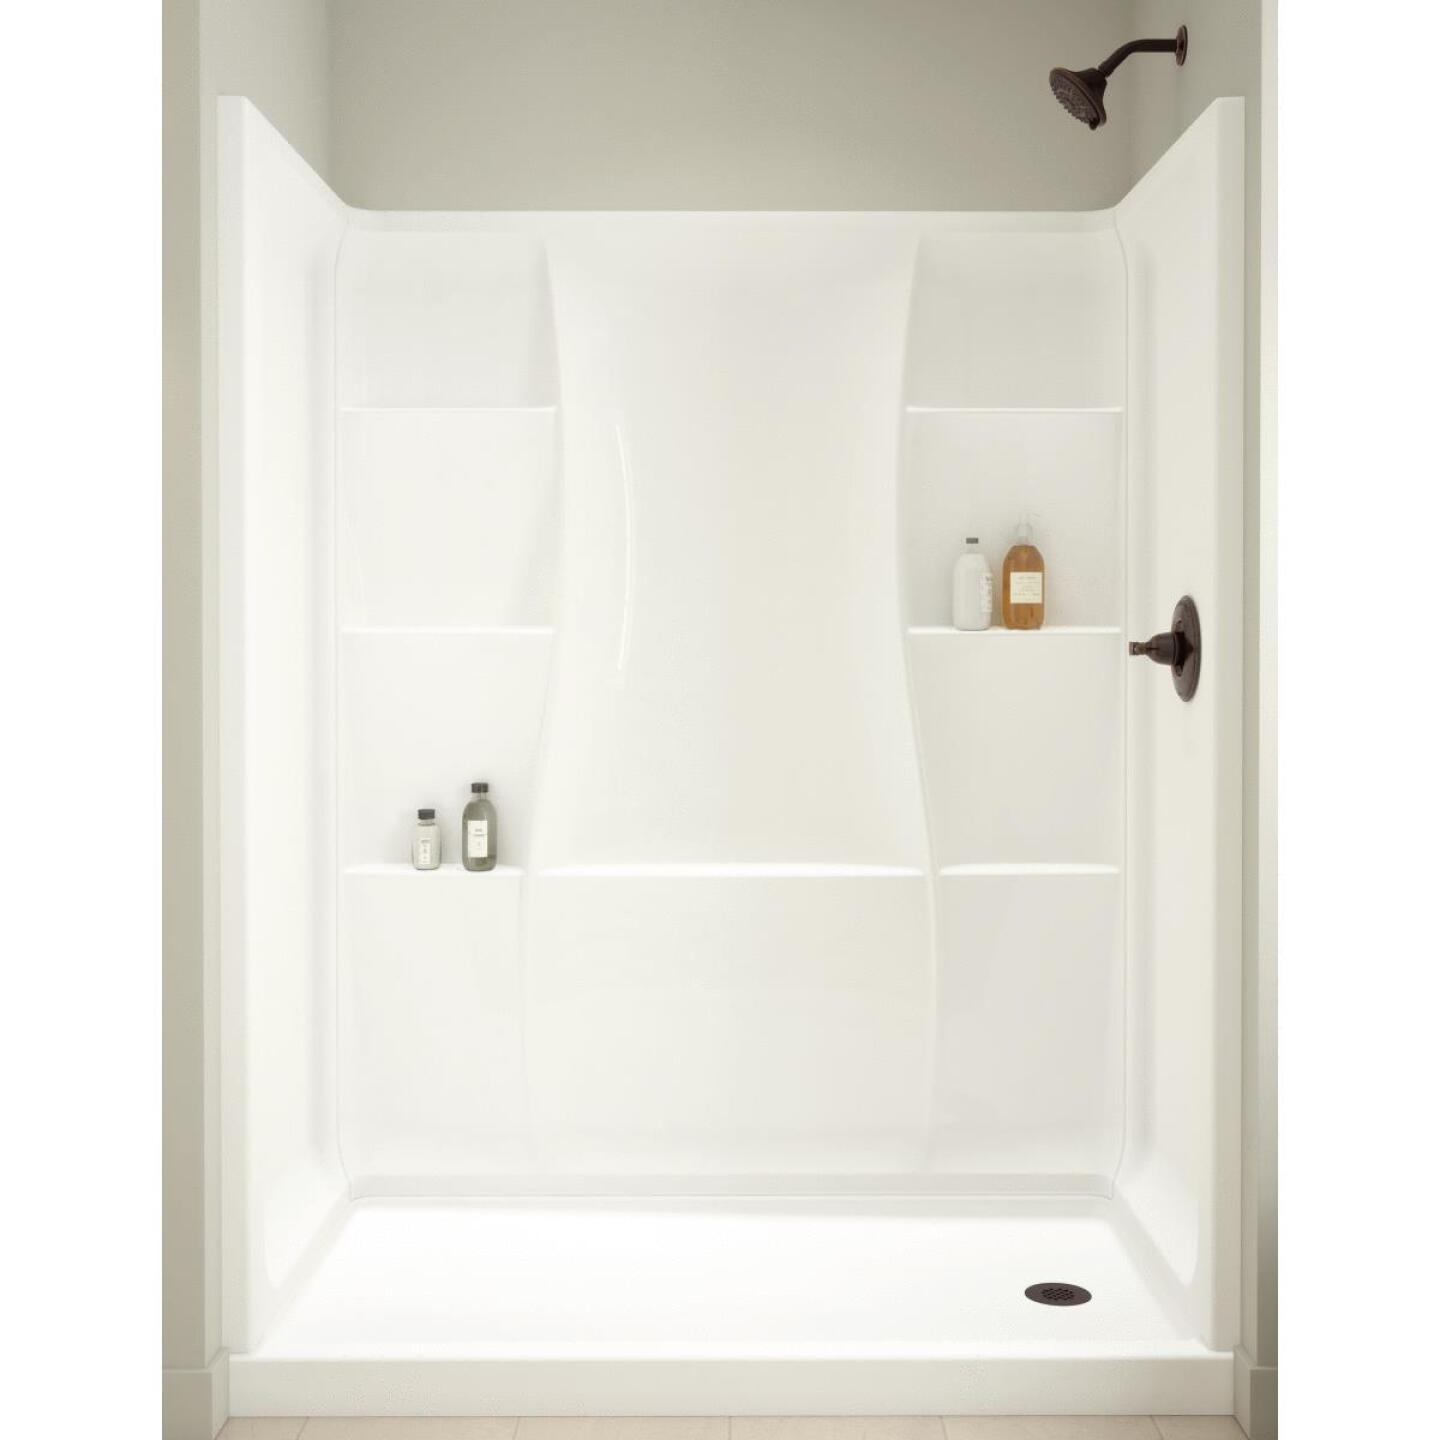 Delta Classic 400 3-Piece 60 In. L x 32 In. D Shower Wall Set in White Image 1